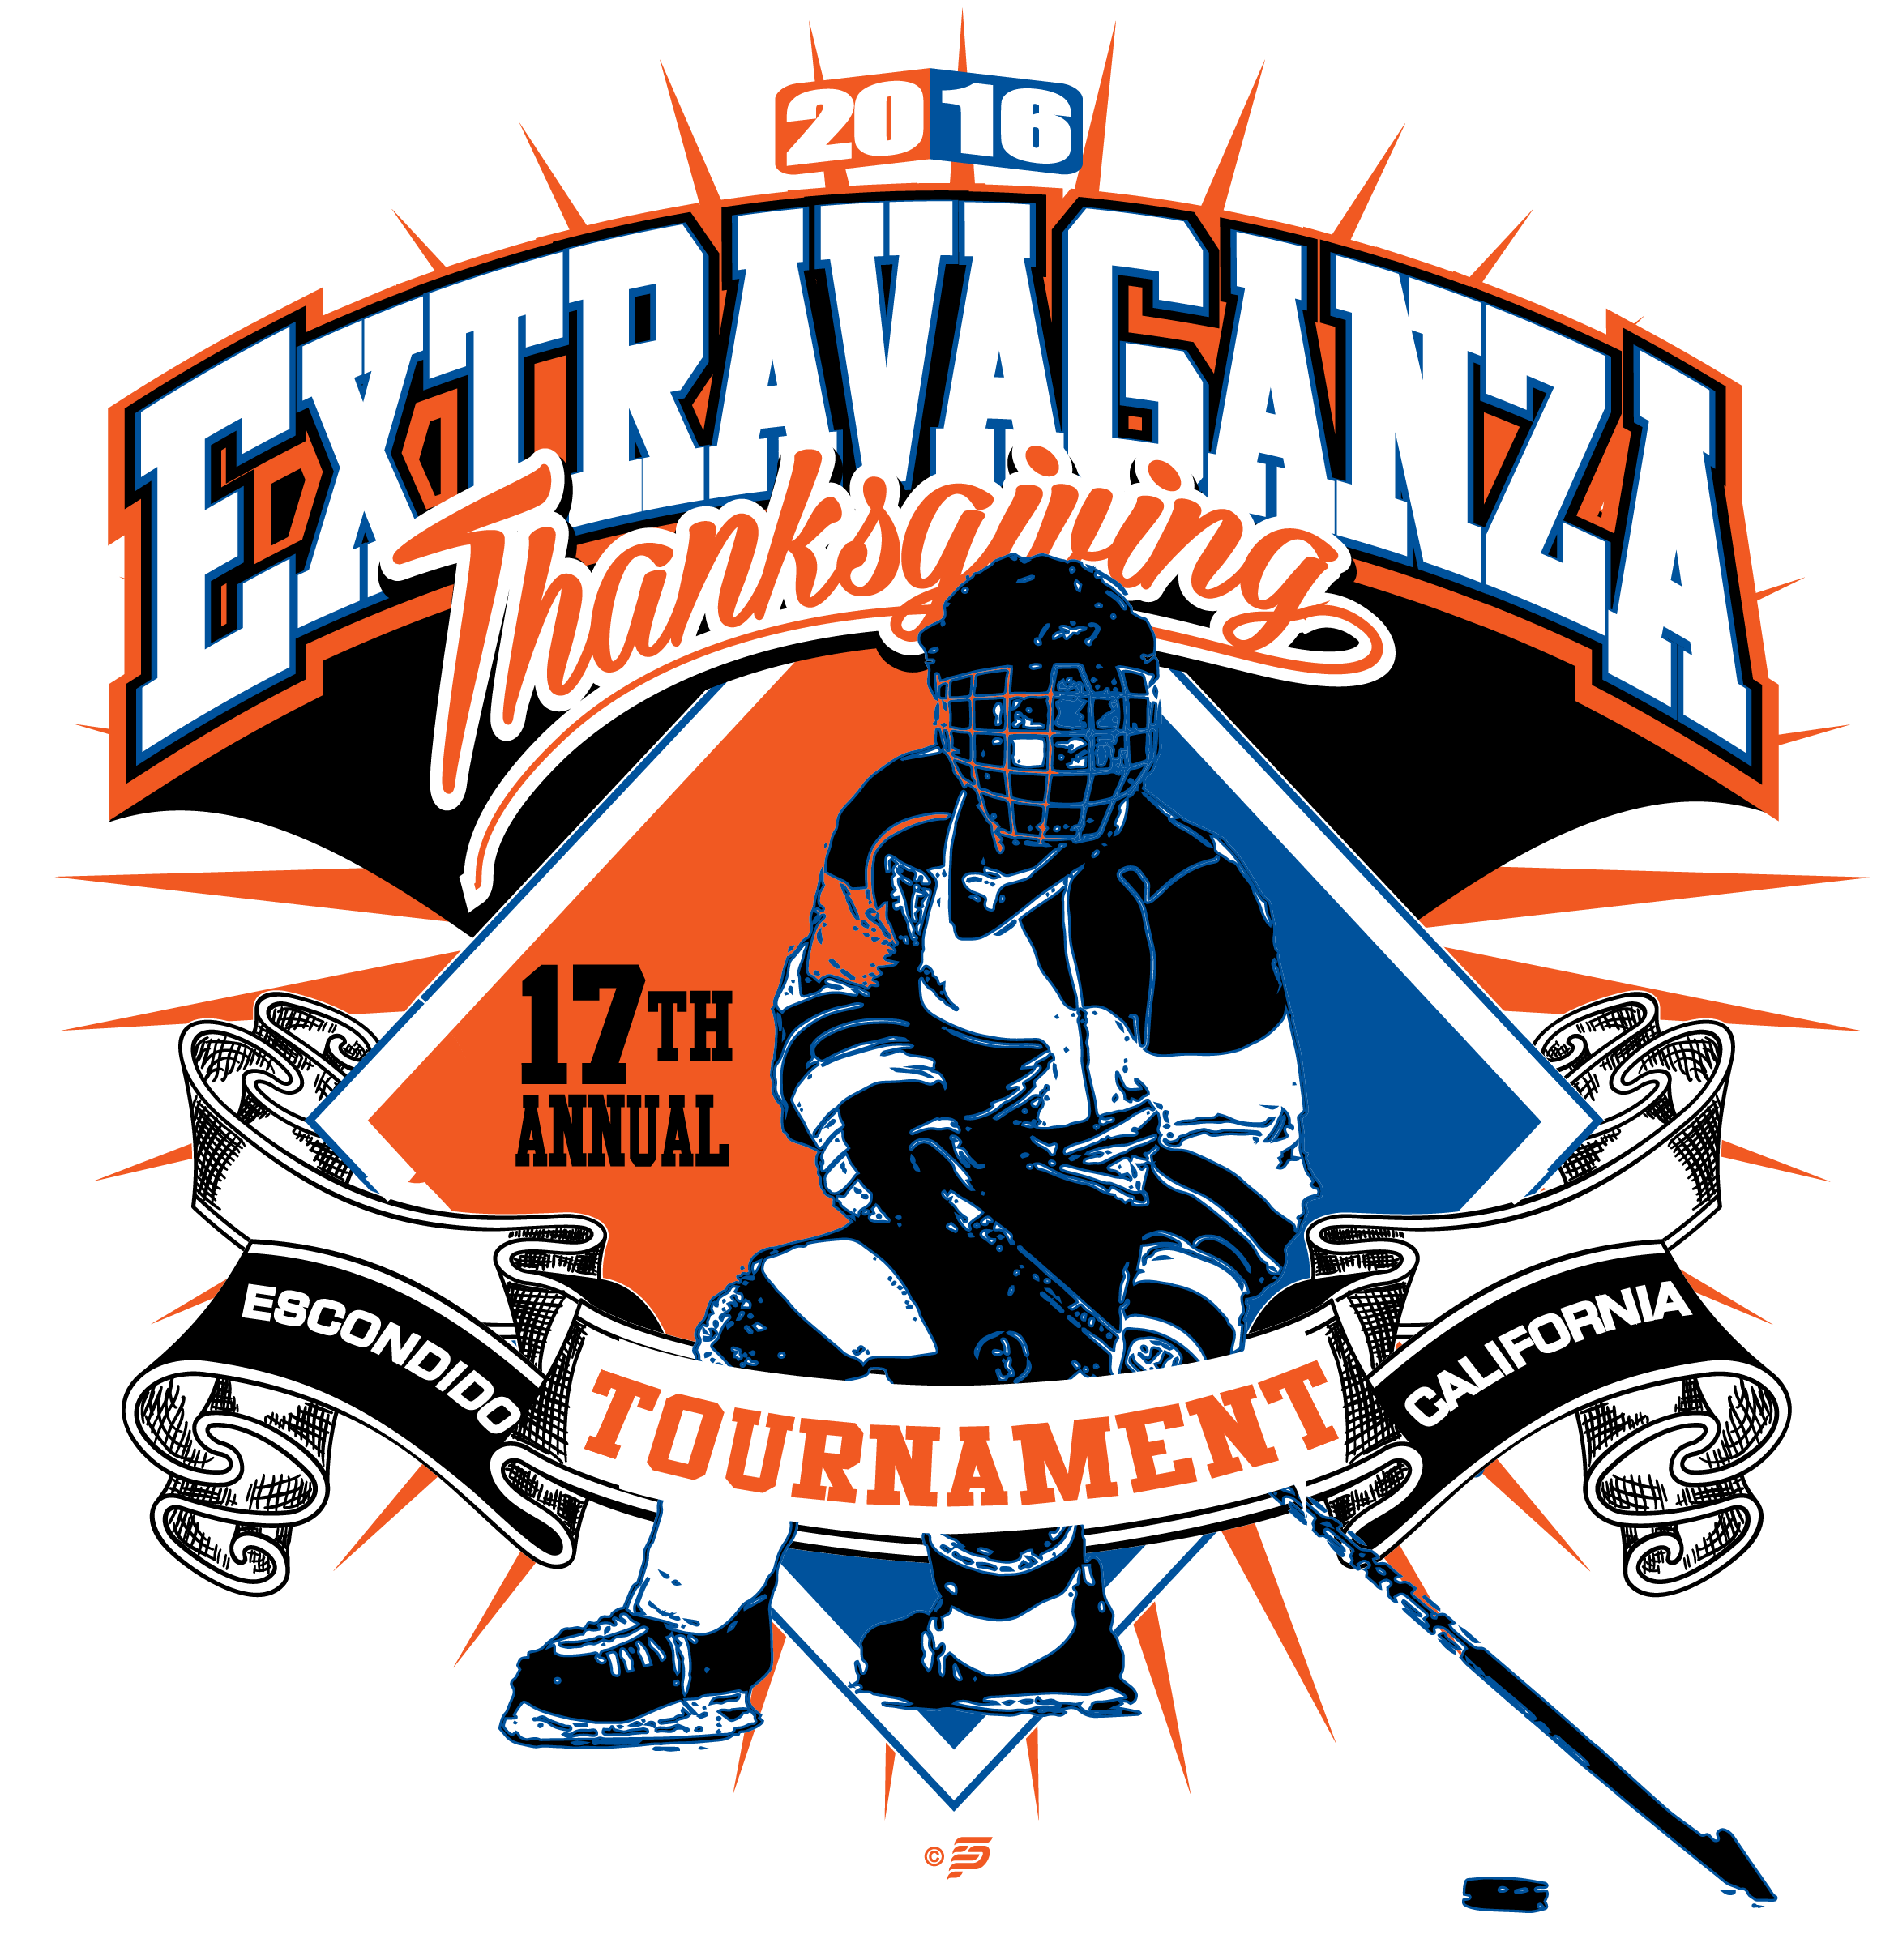 Thanksgiving Extravaganza Tournamnet